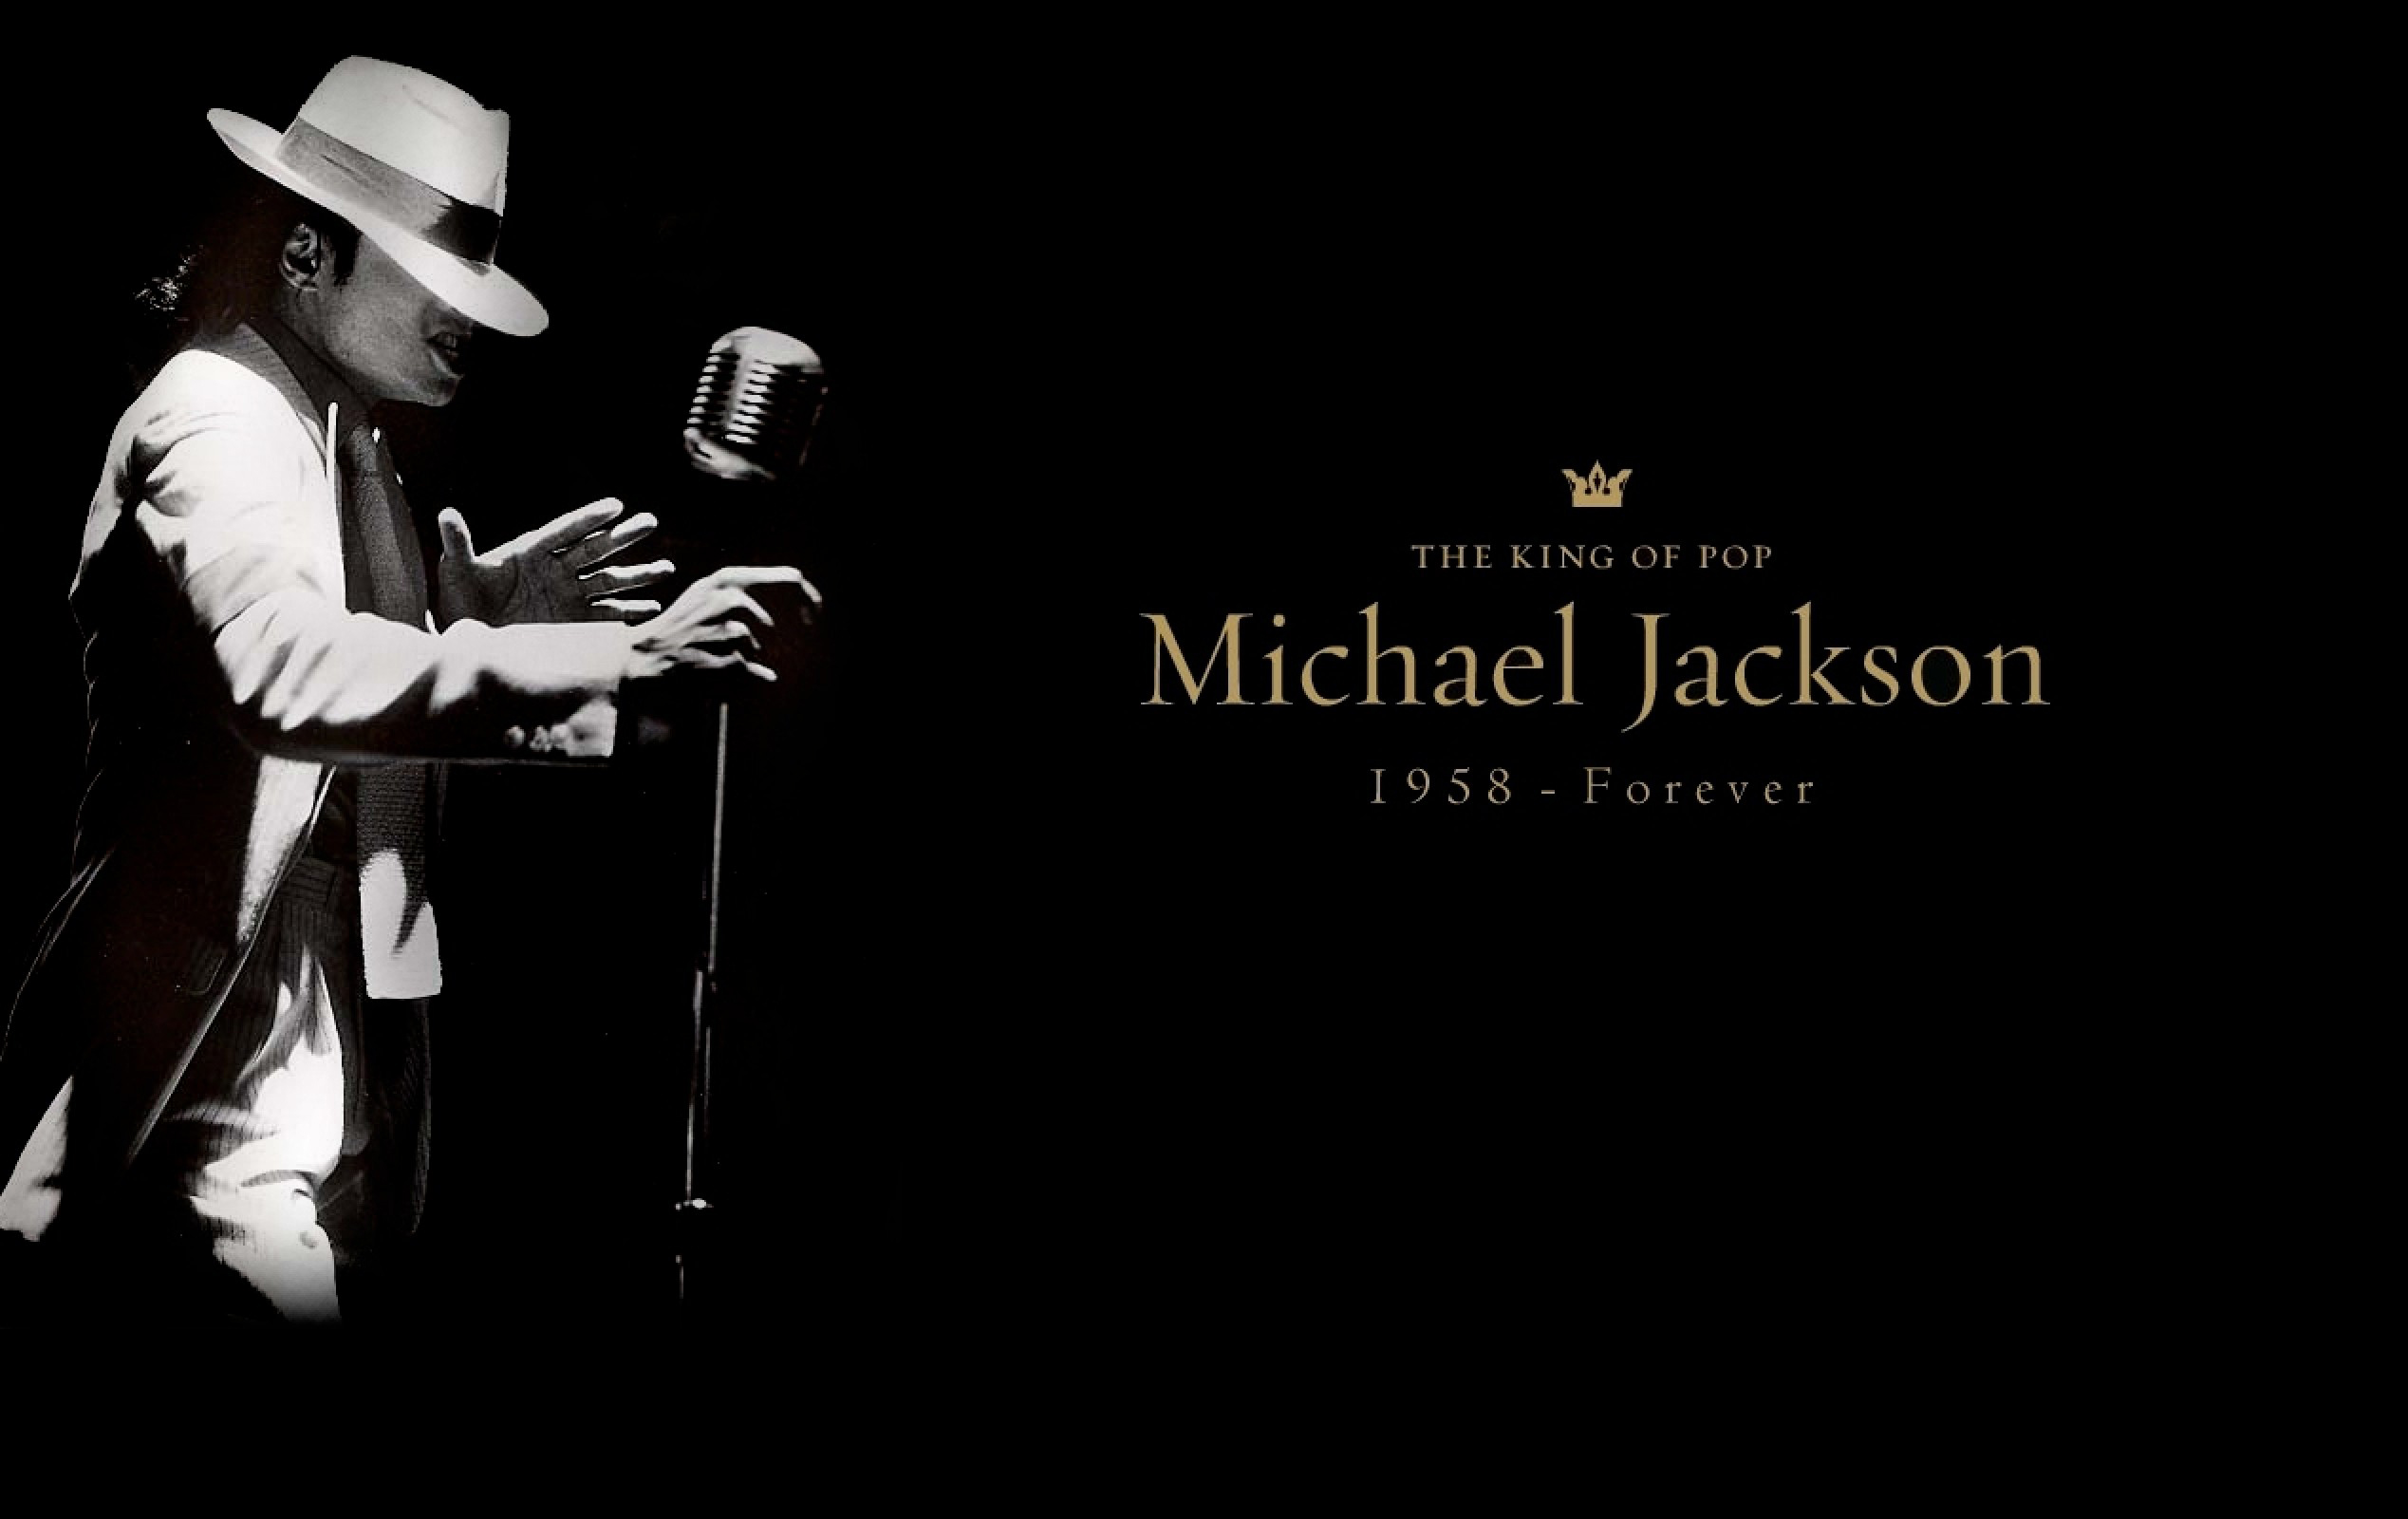 download michael jackson king of pop photoshoot 1280x1024 resolution